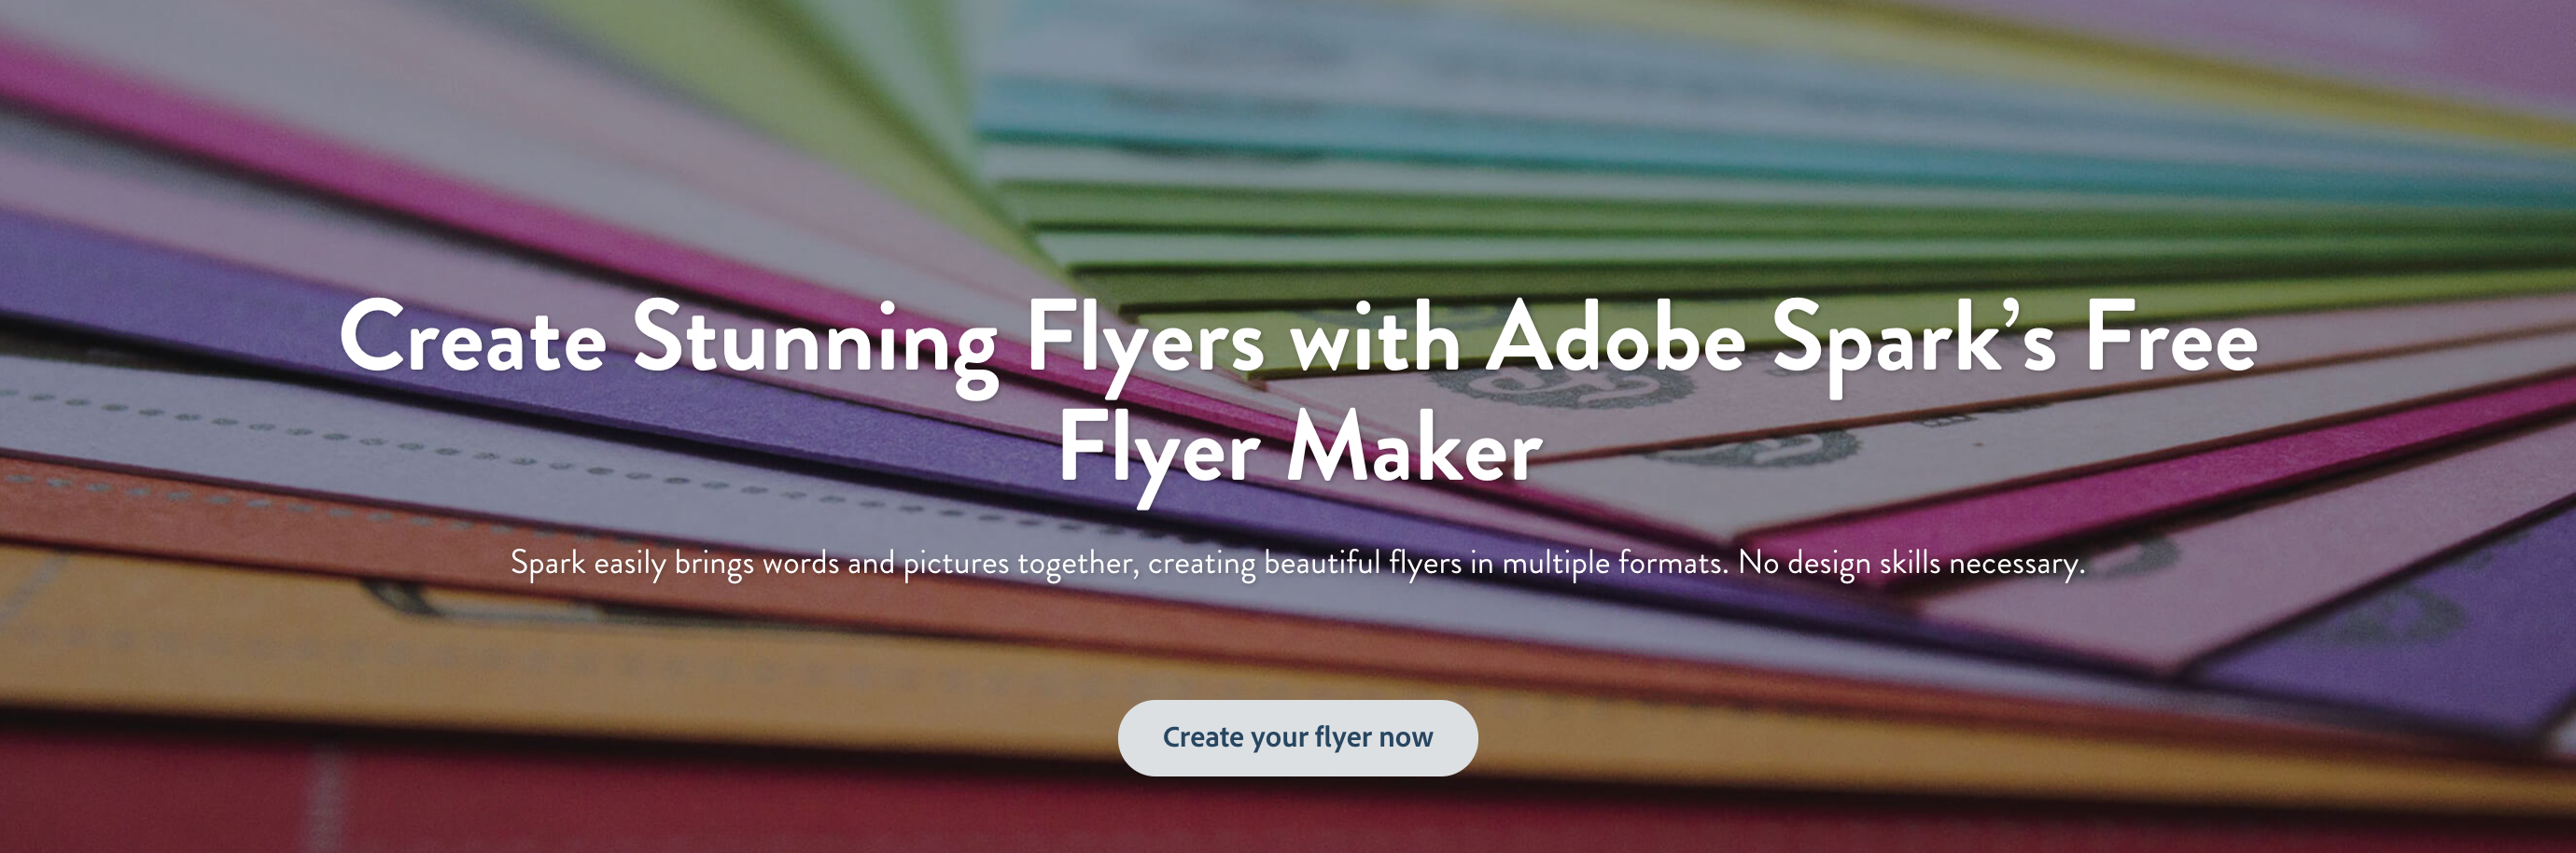 Flyer Maker: Create Beautiful Flyers For Free | Adobe Spark - Create Your Own Free Printable Flyers